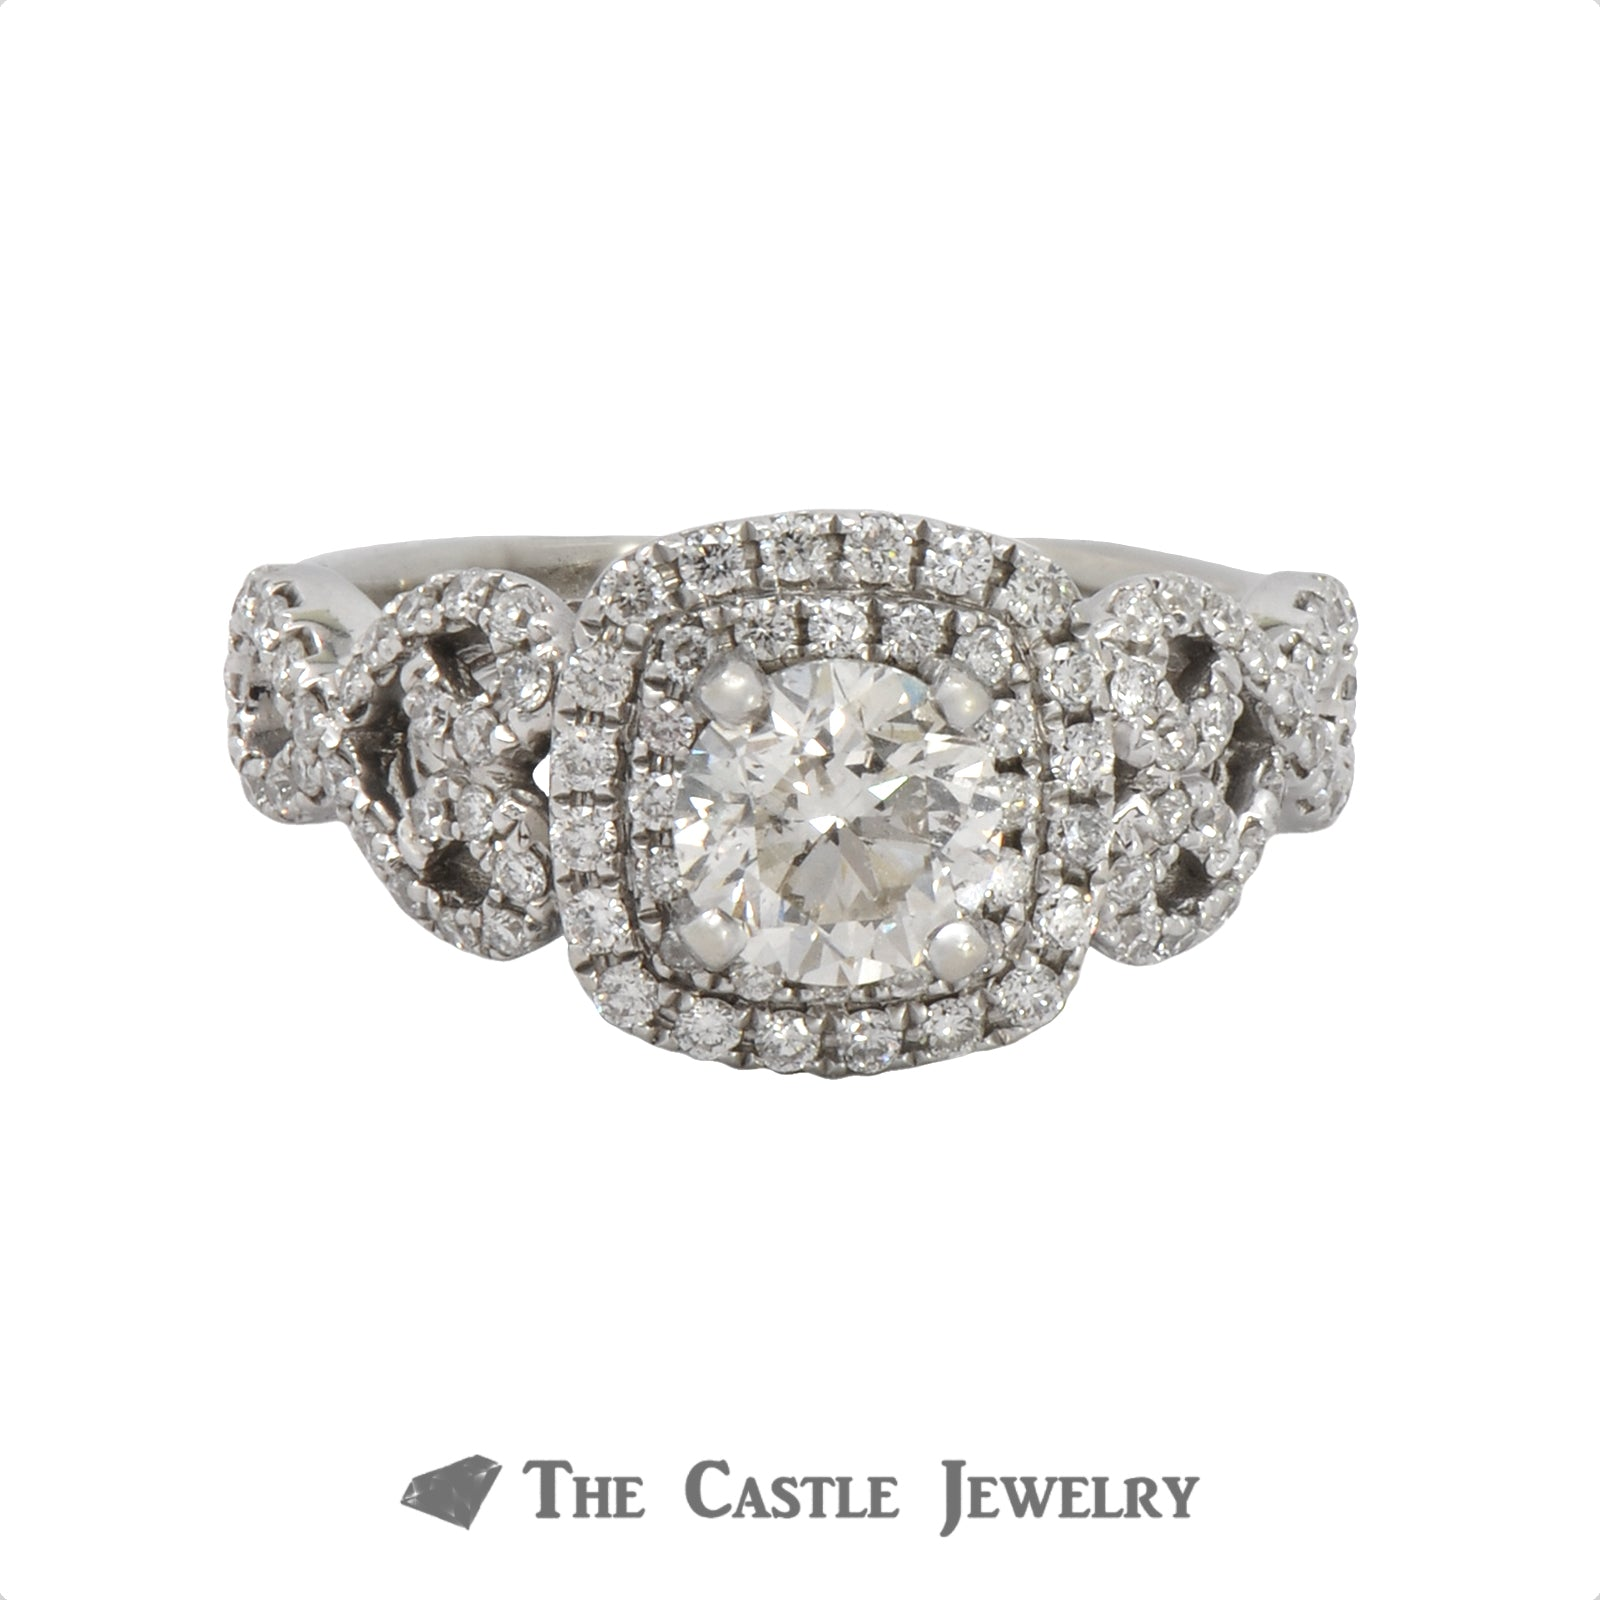 Diamond Engagement Ring With 1cttw Diamond Halo & Accents In 14k White Gold